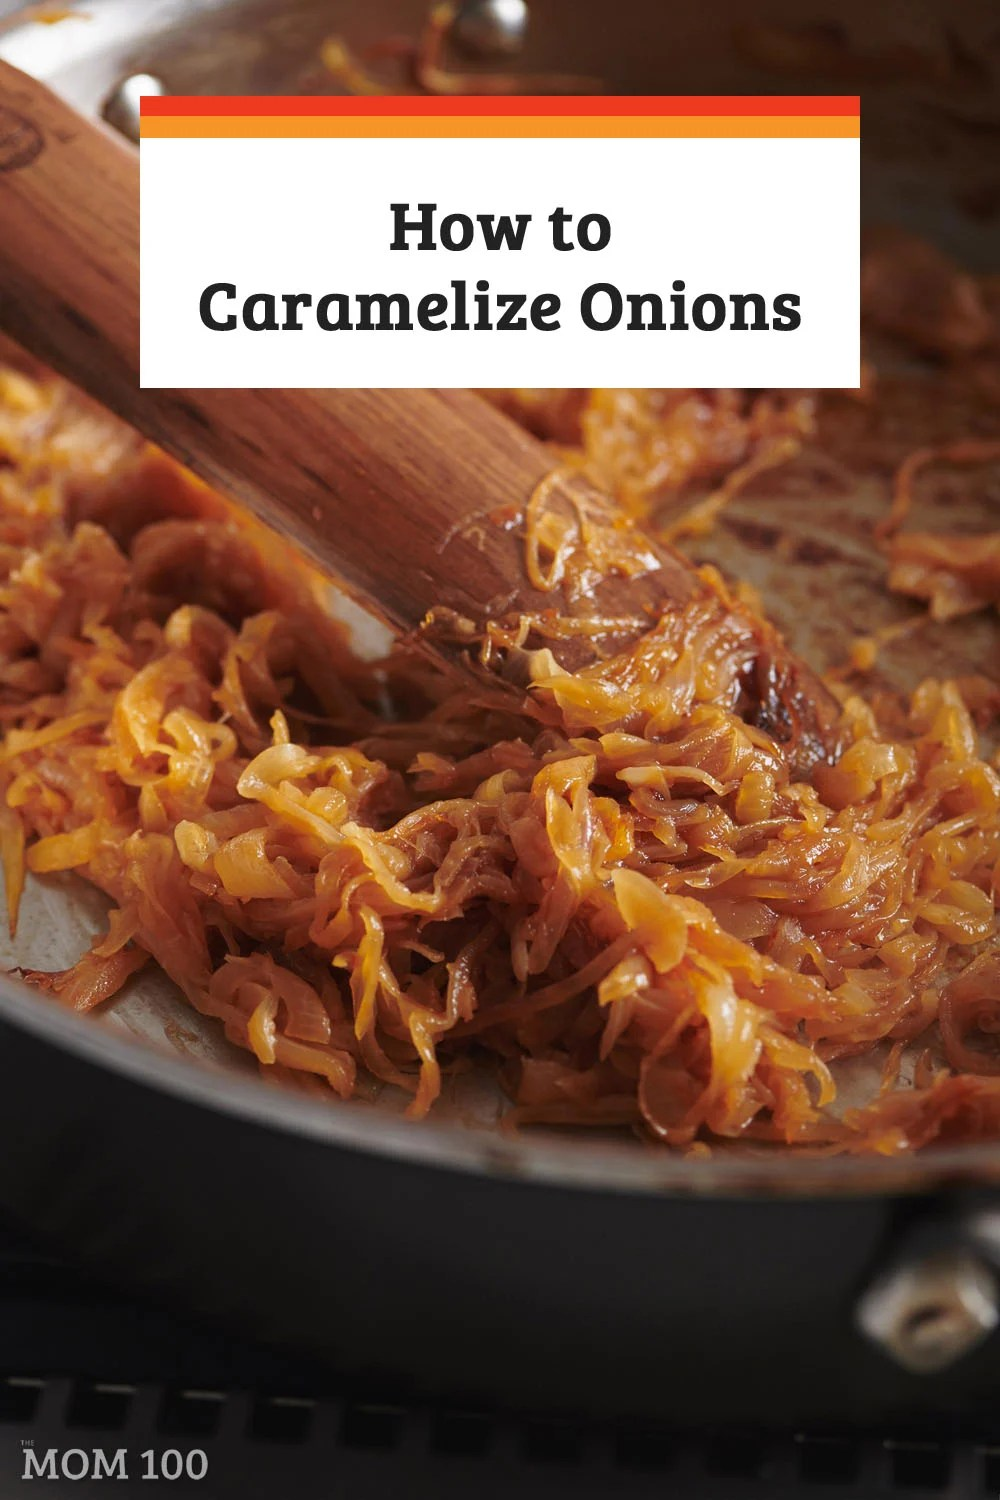 How to Perfectly Caramelize Onions: A step by step guide to making perfect caramelized onions every time, with photos (and how to use them!). #caramelizedonions #onions #cookingtips